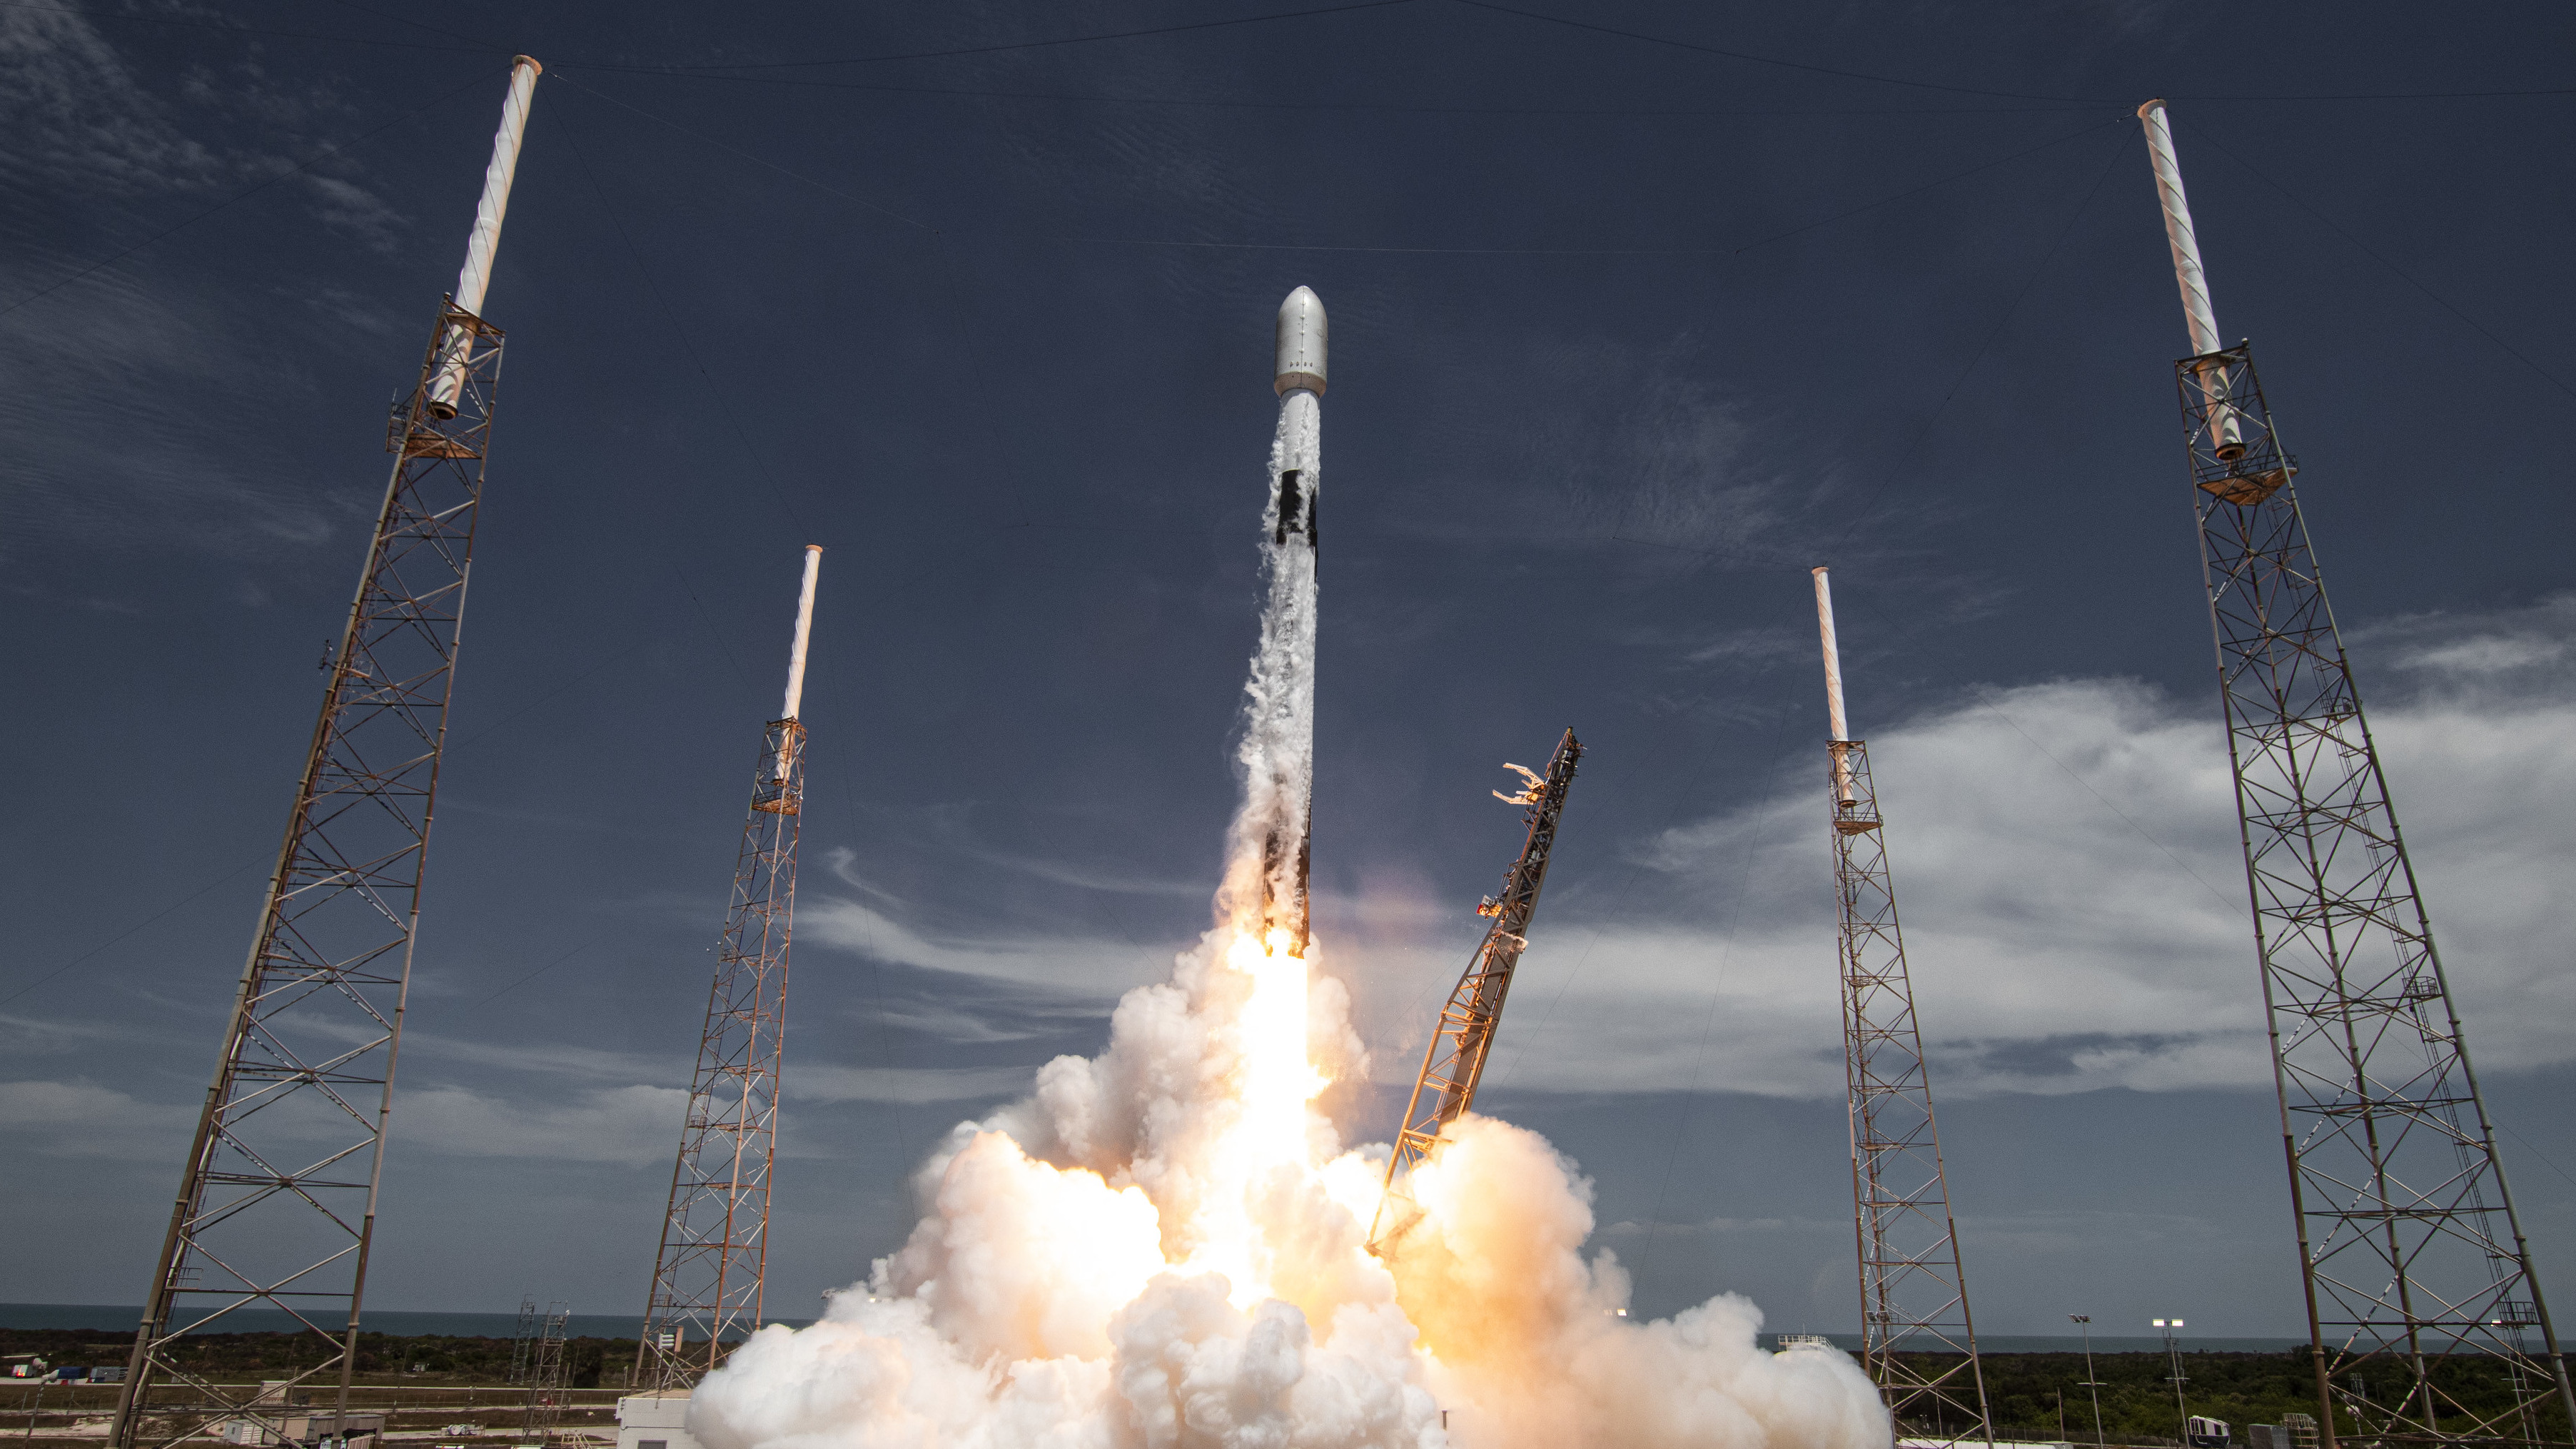 A SpaceX Falcon 9 rocket launches satellites in 2021.